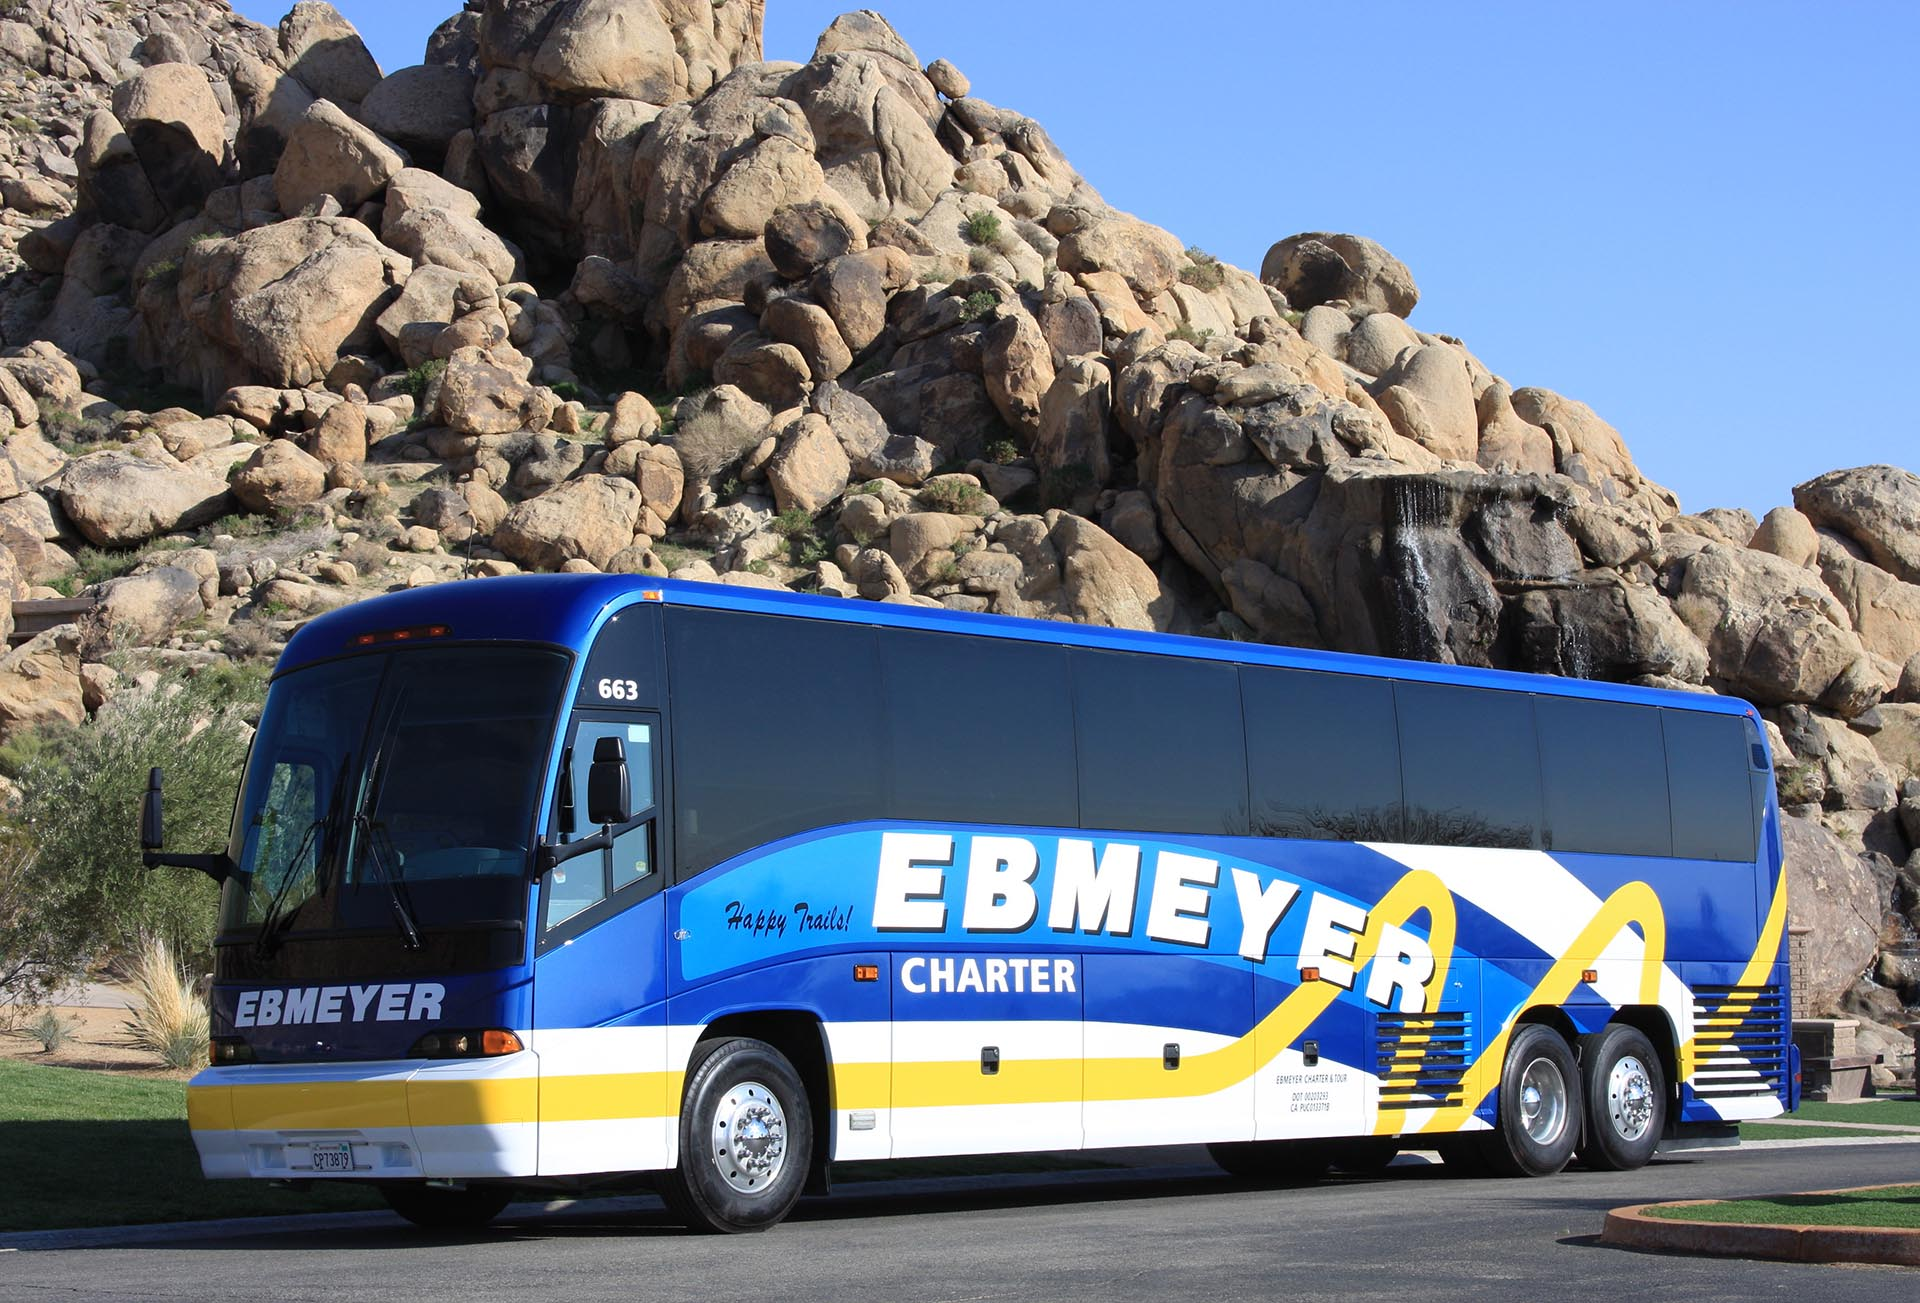 bruce-Ebmeyer-663bus